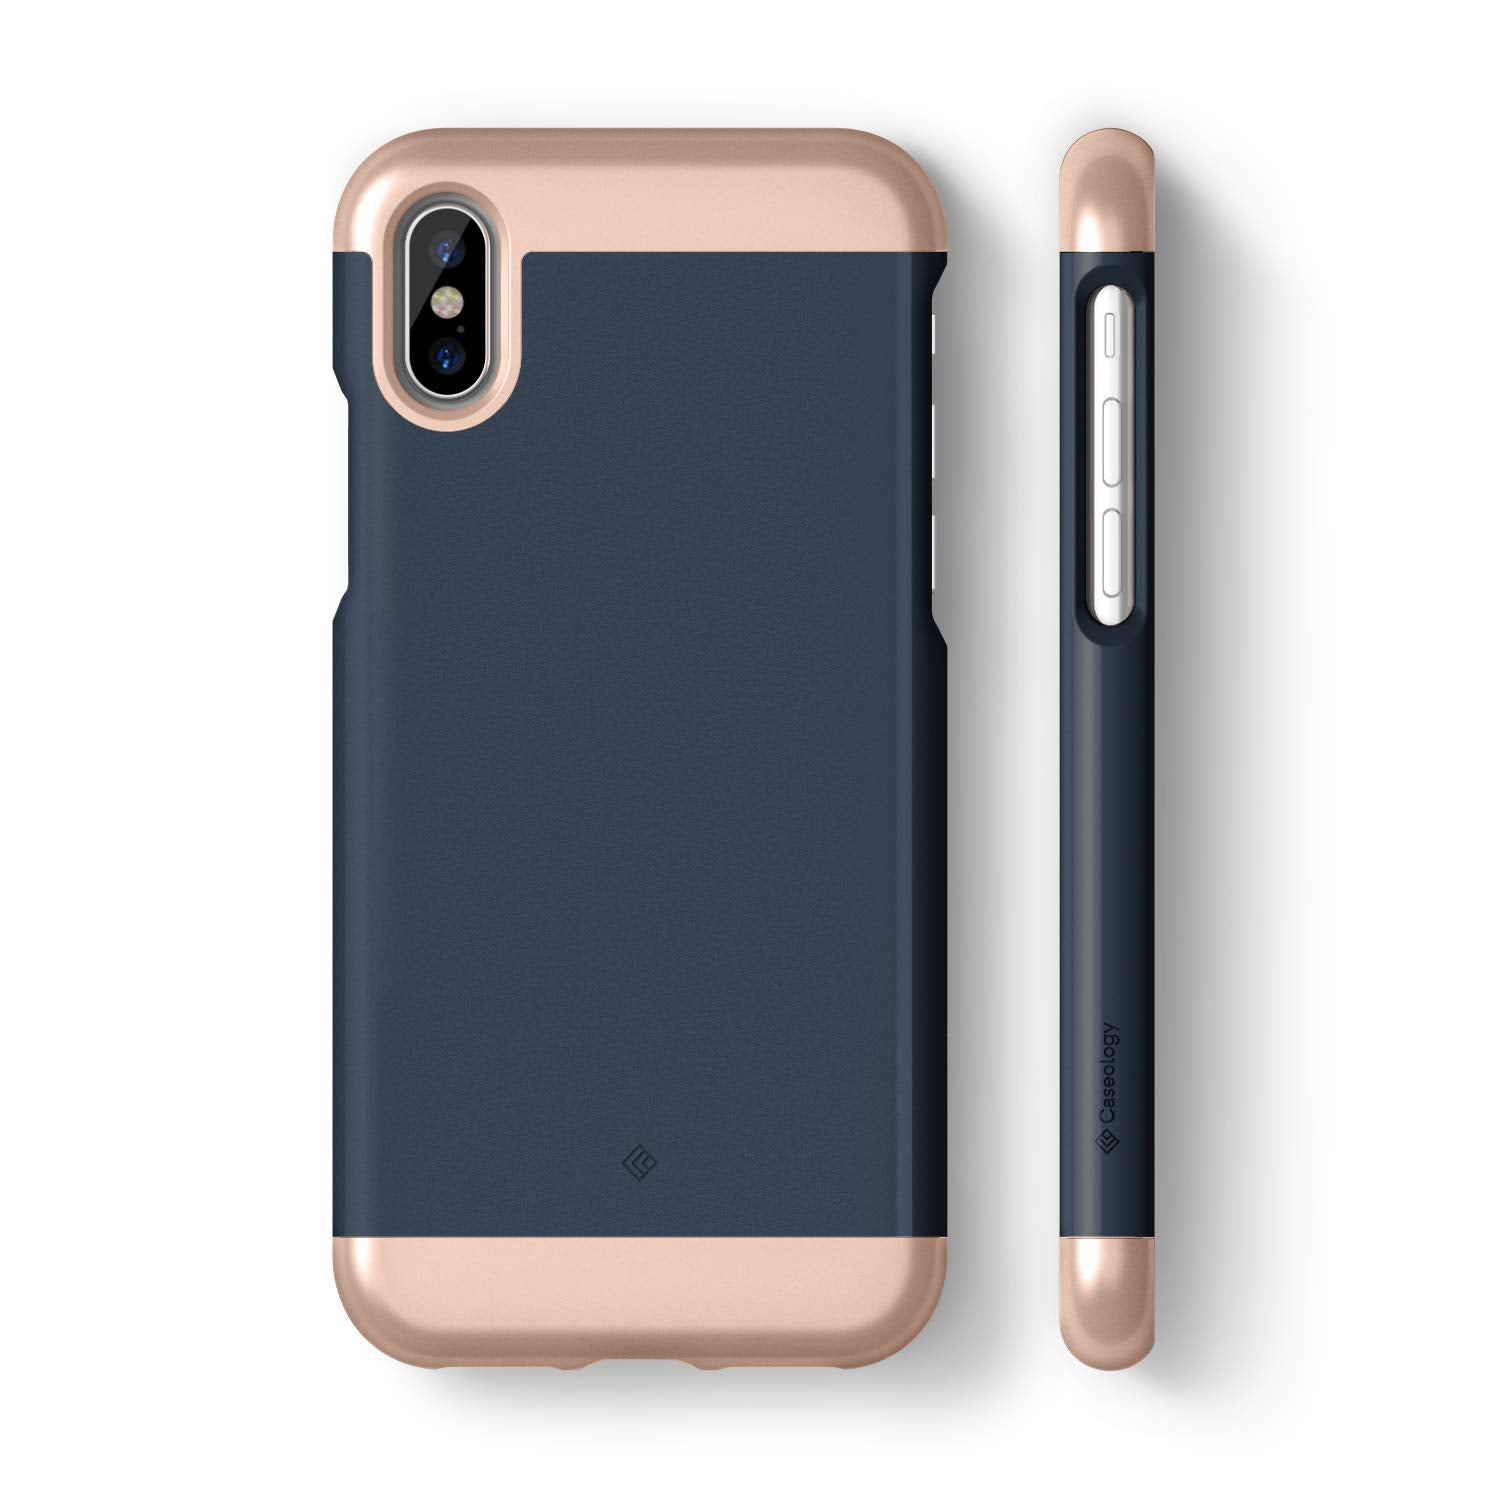 info for 7b3b0 f4c9f Caseology [Savoy Series] iPhone XS/iPhone X Phone Case - [Stylish Design] -  Navy Blue